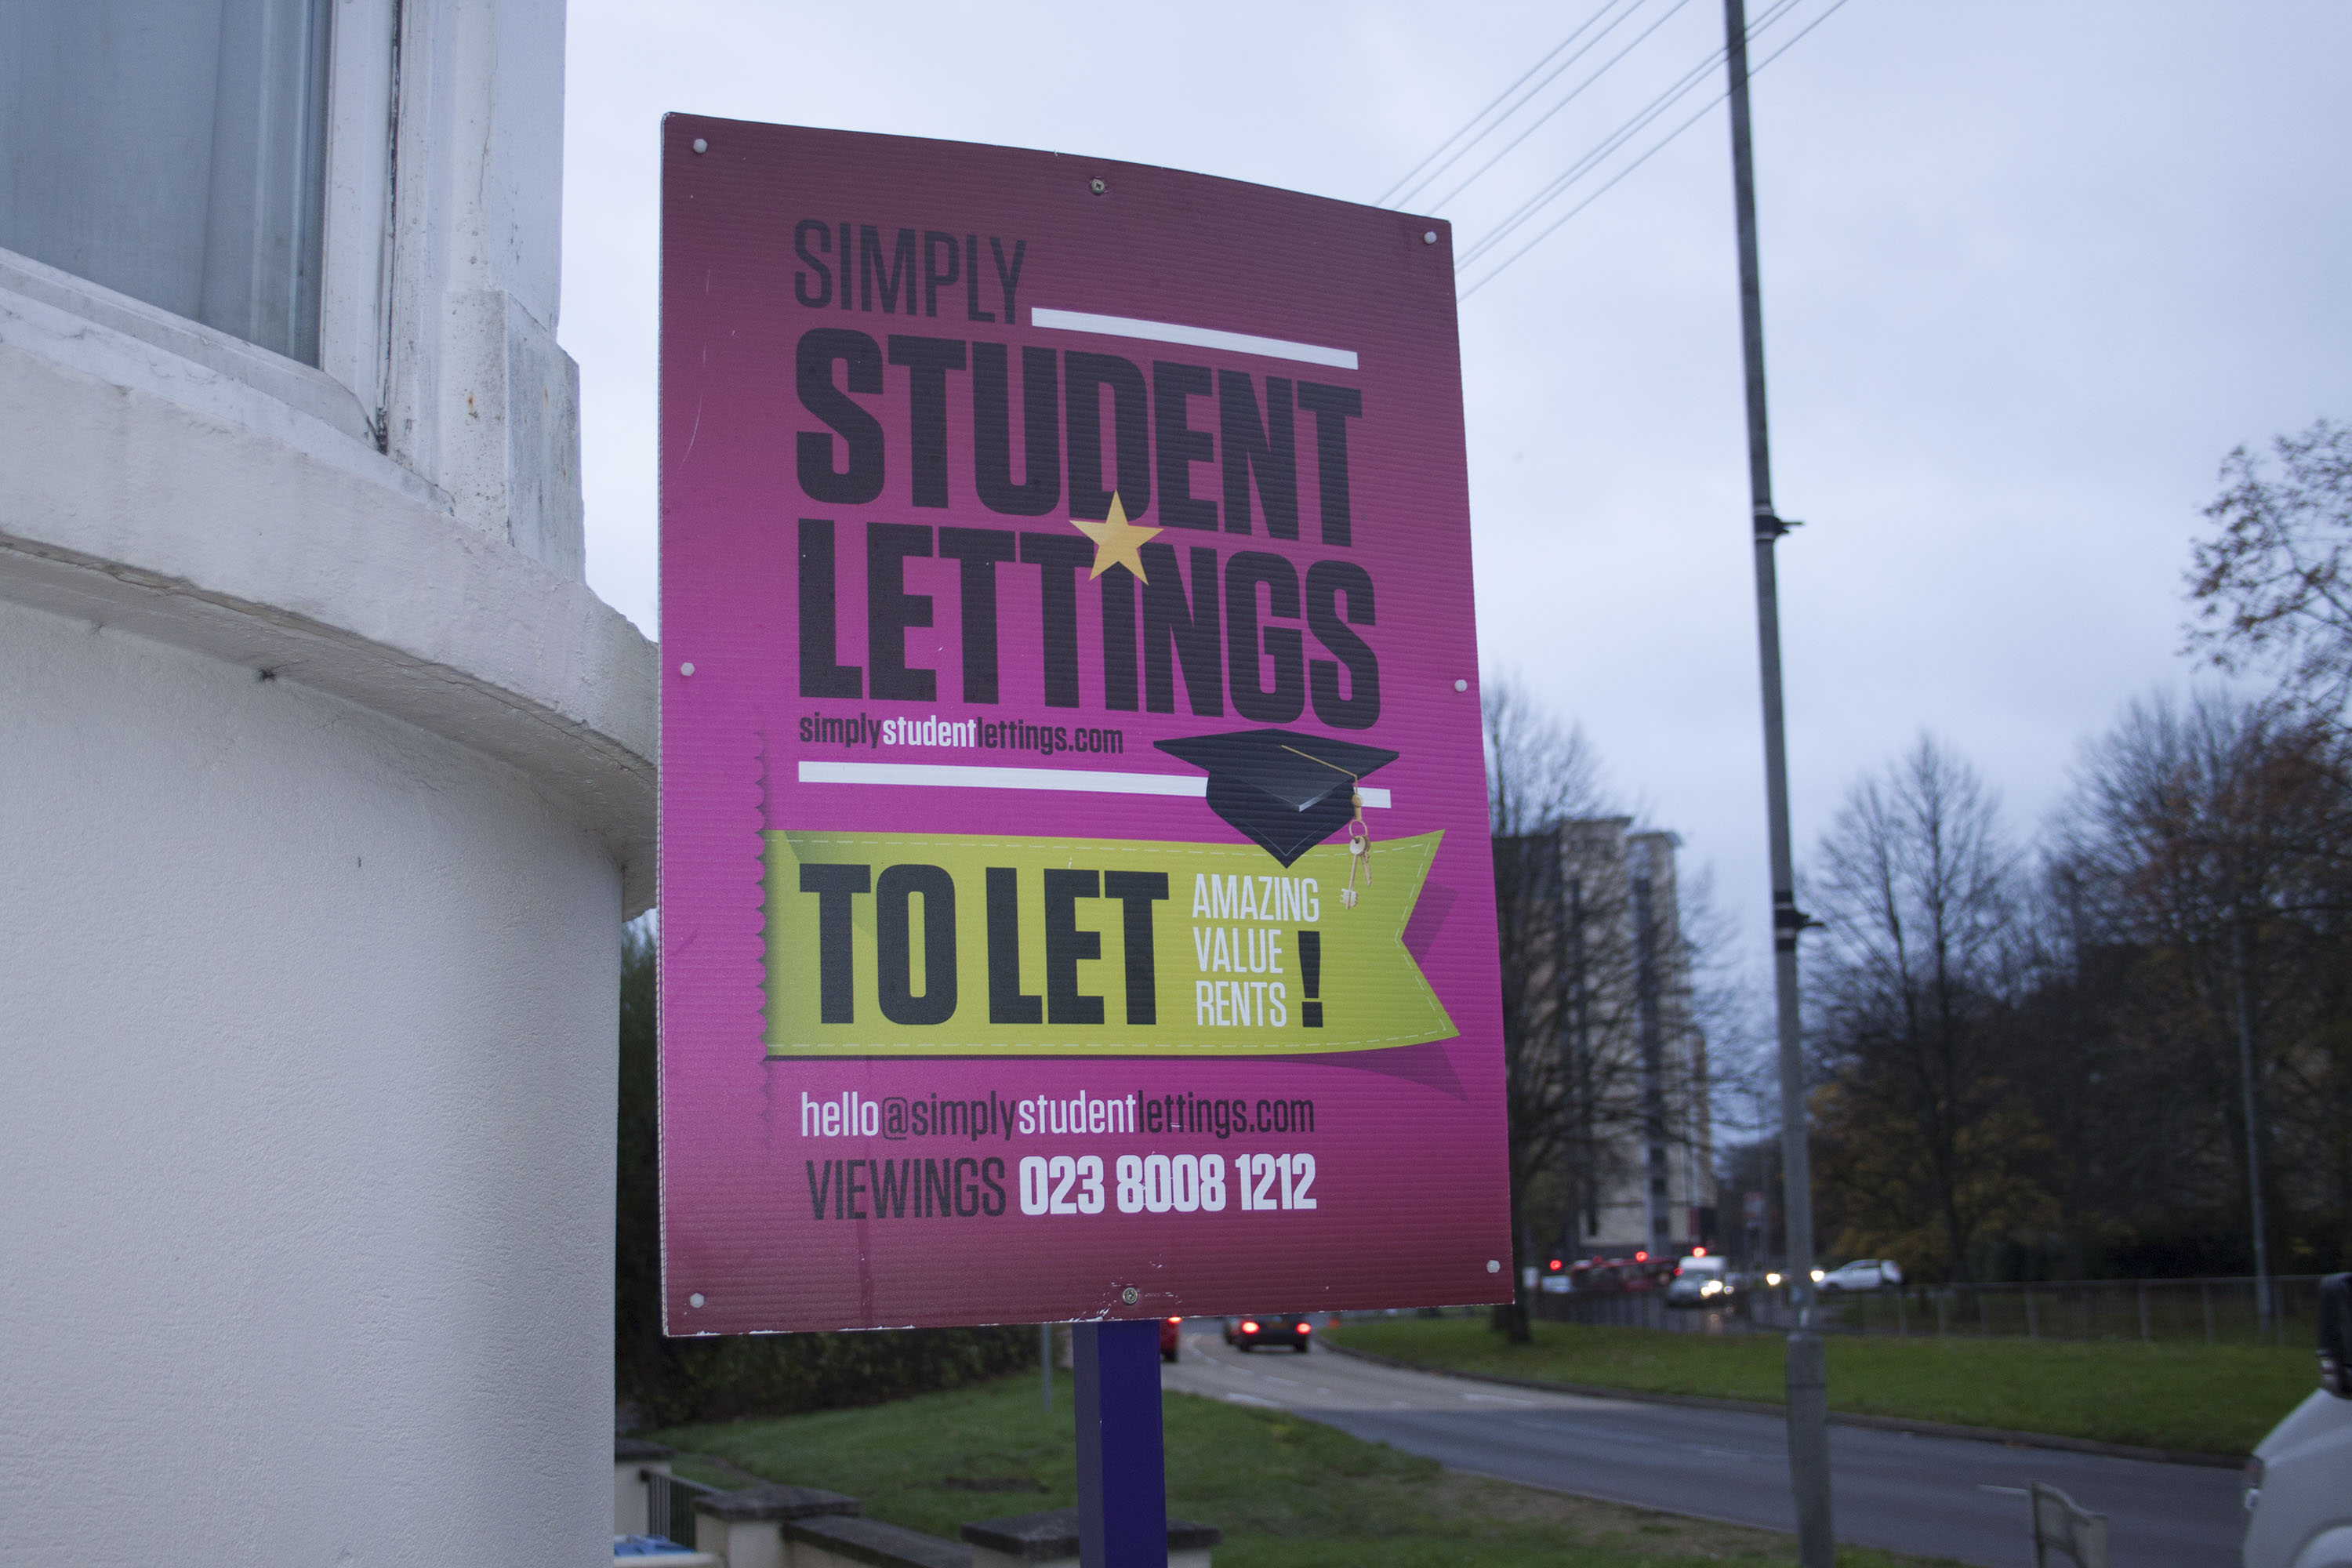 Accommodation is still number one worry for university students